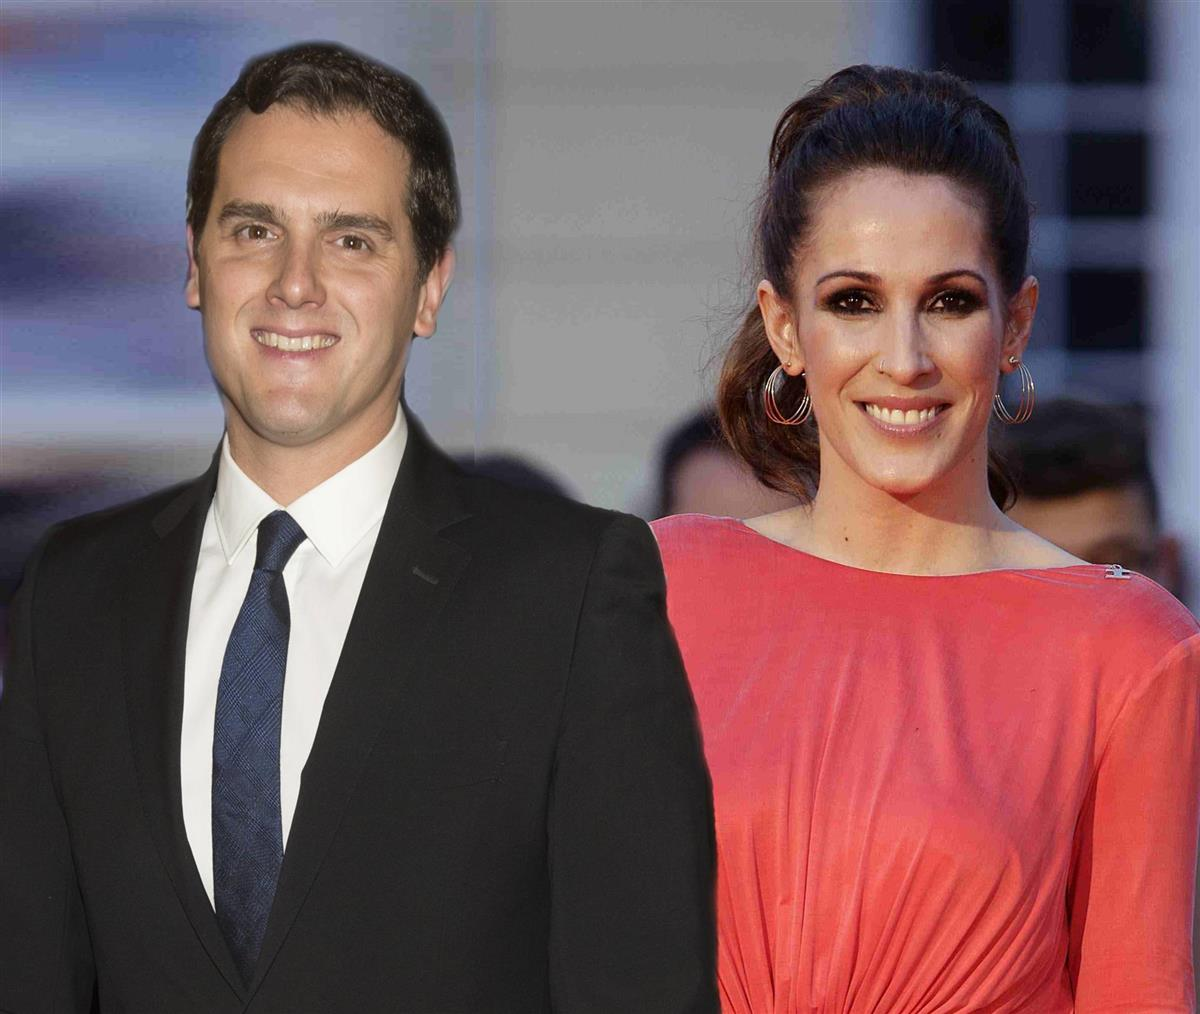 Collage Malú y Albert Rivera. Será un encuentro casual